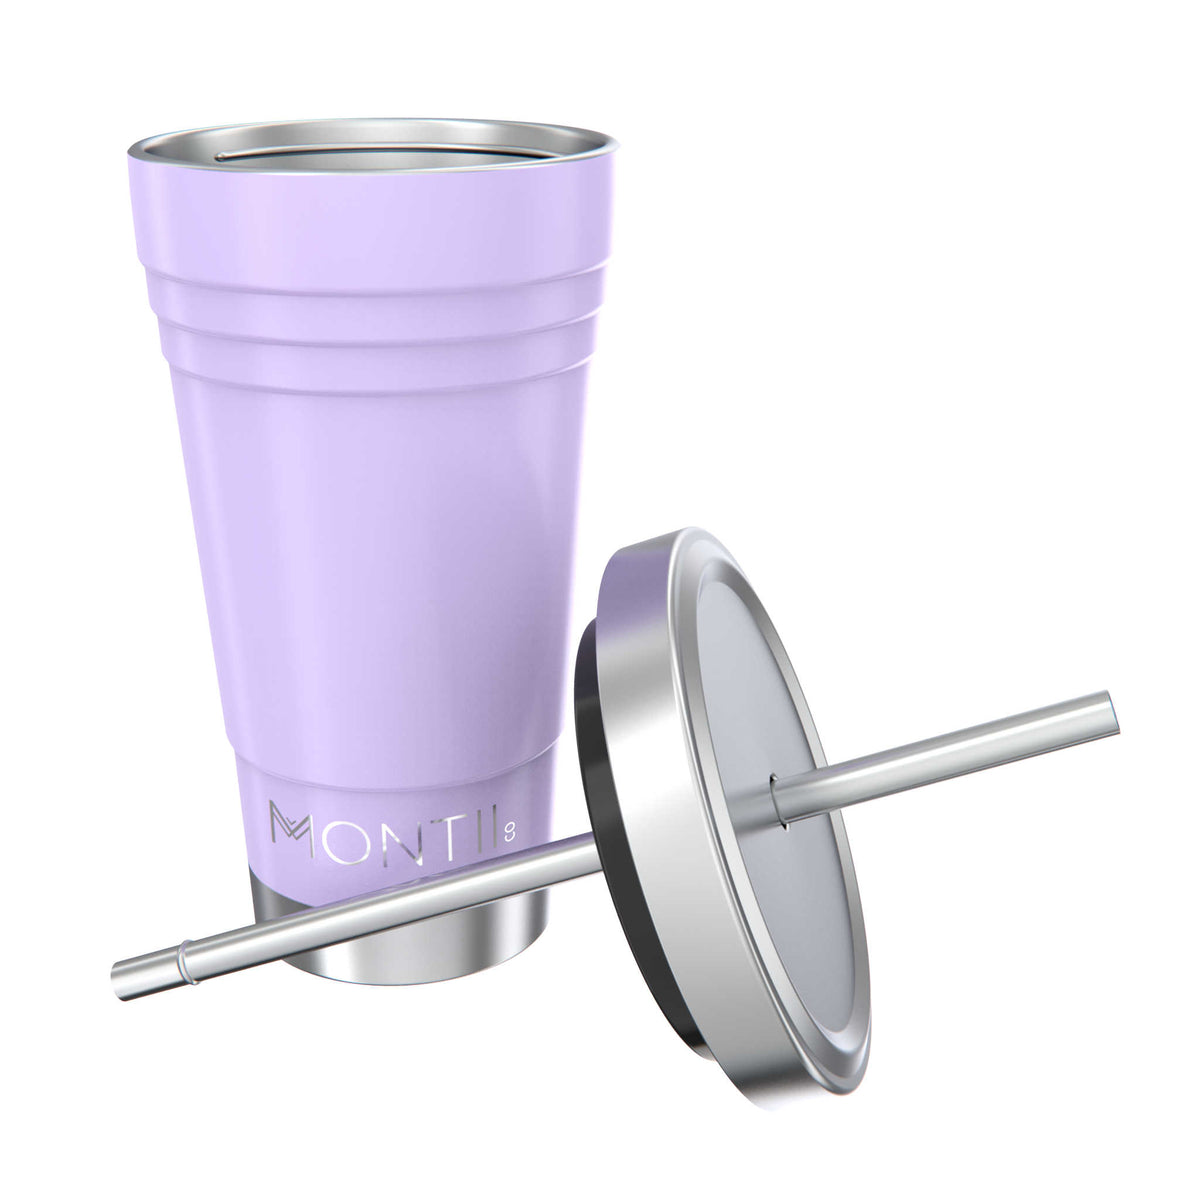 MontiiCo Original Smoothie Cup -Lavender - NEW!